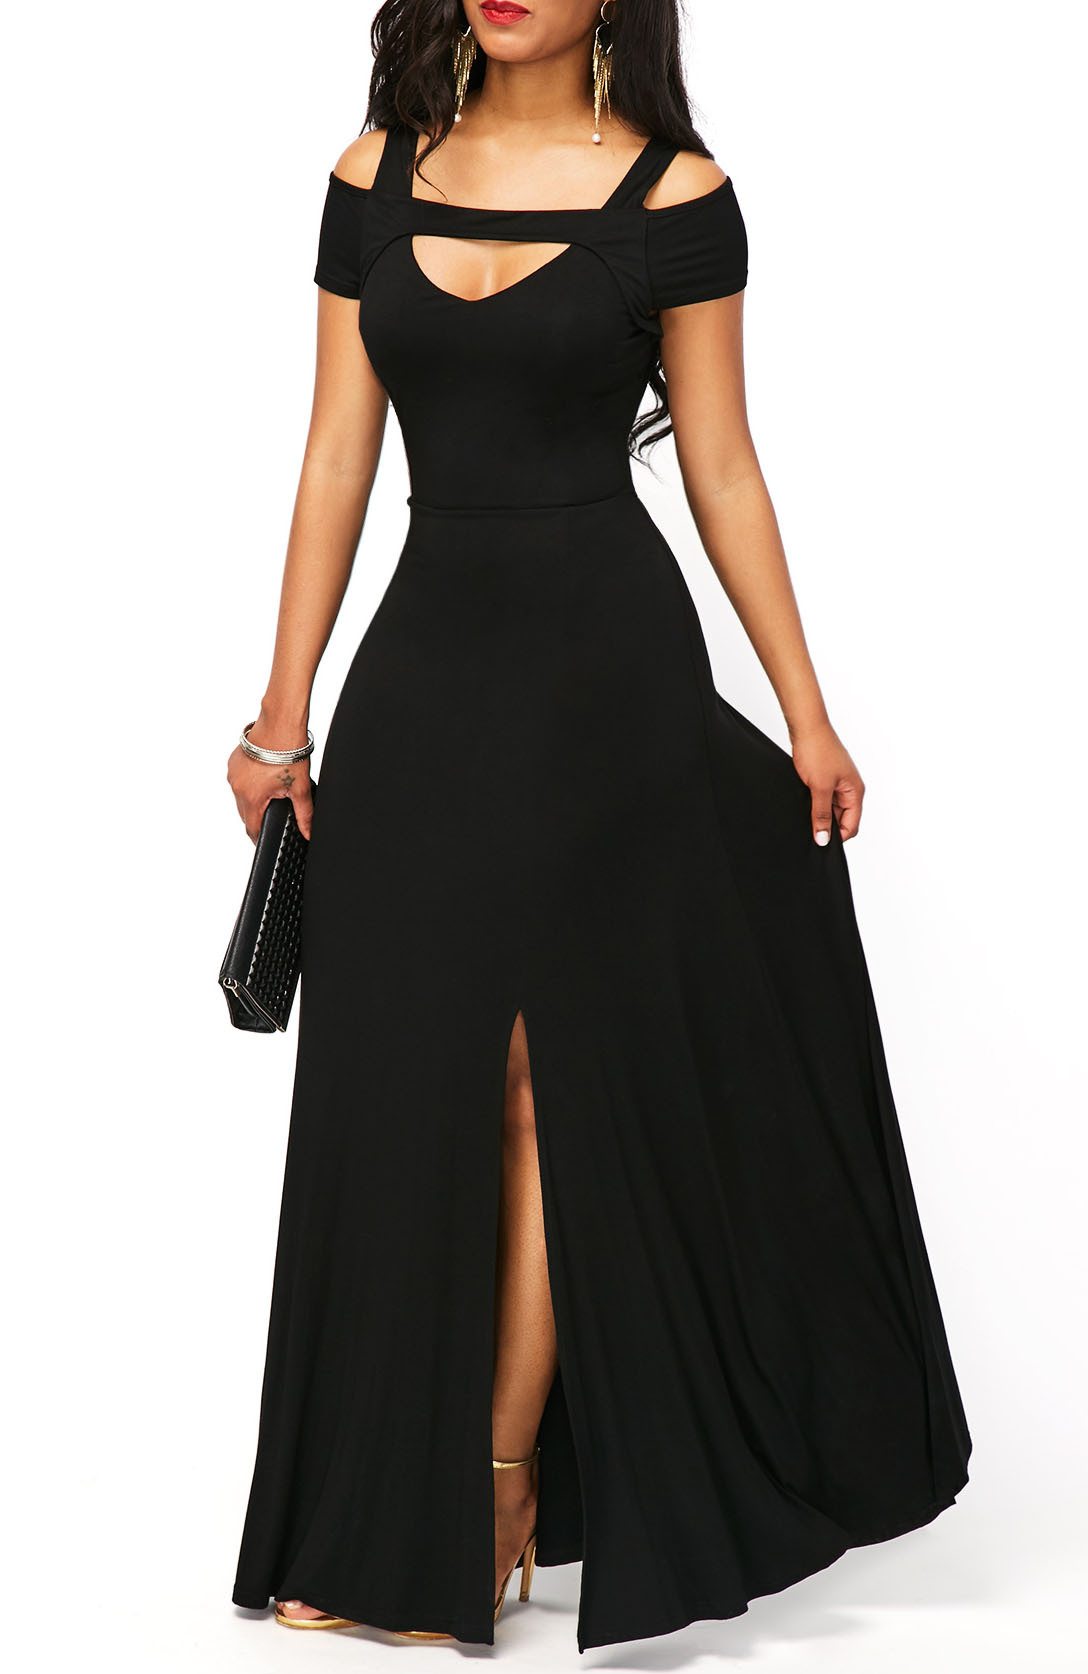 HTB1vUkmdvWG3KVjSZPcq6zkbXXak - Summer Dress Women Elegant Sexy V Neck Off Shoulder Split Long Party Dress Casual Plus Size Slim Ball Gown Maxi Dresses 5XL